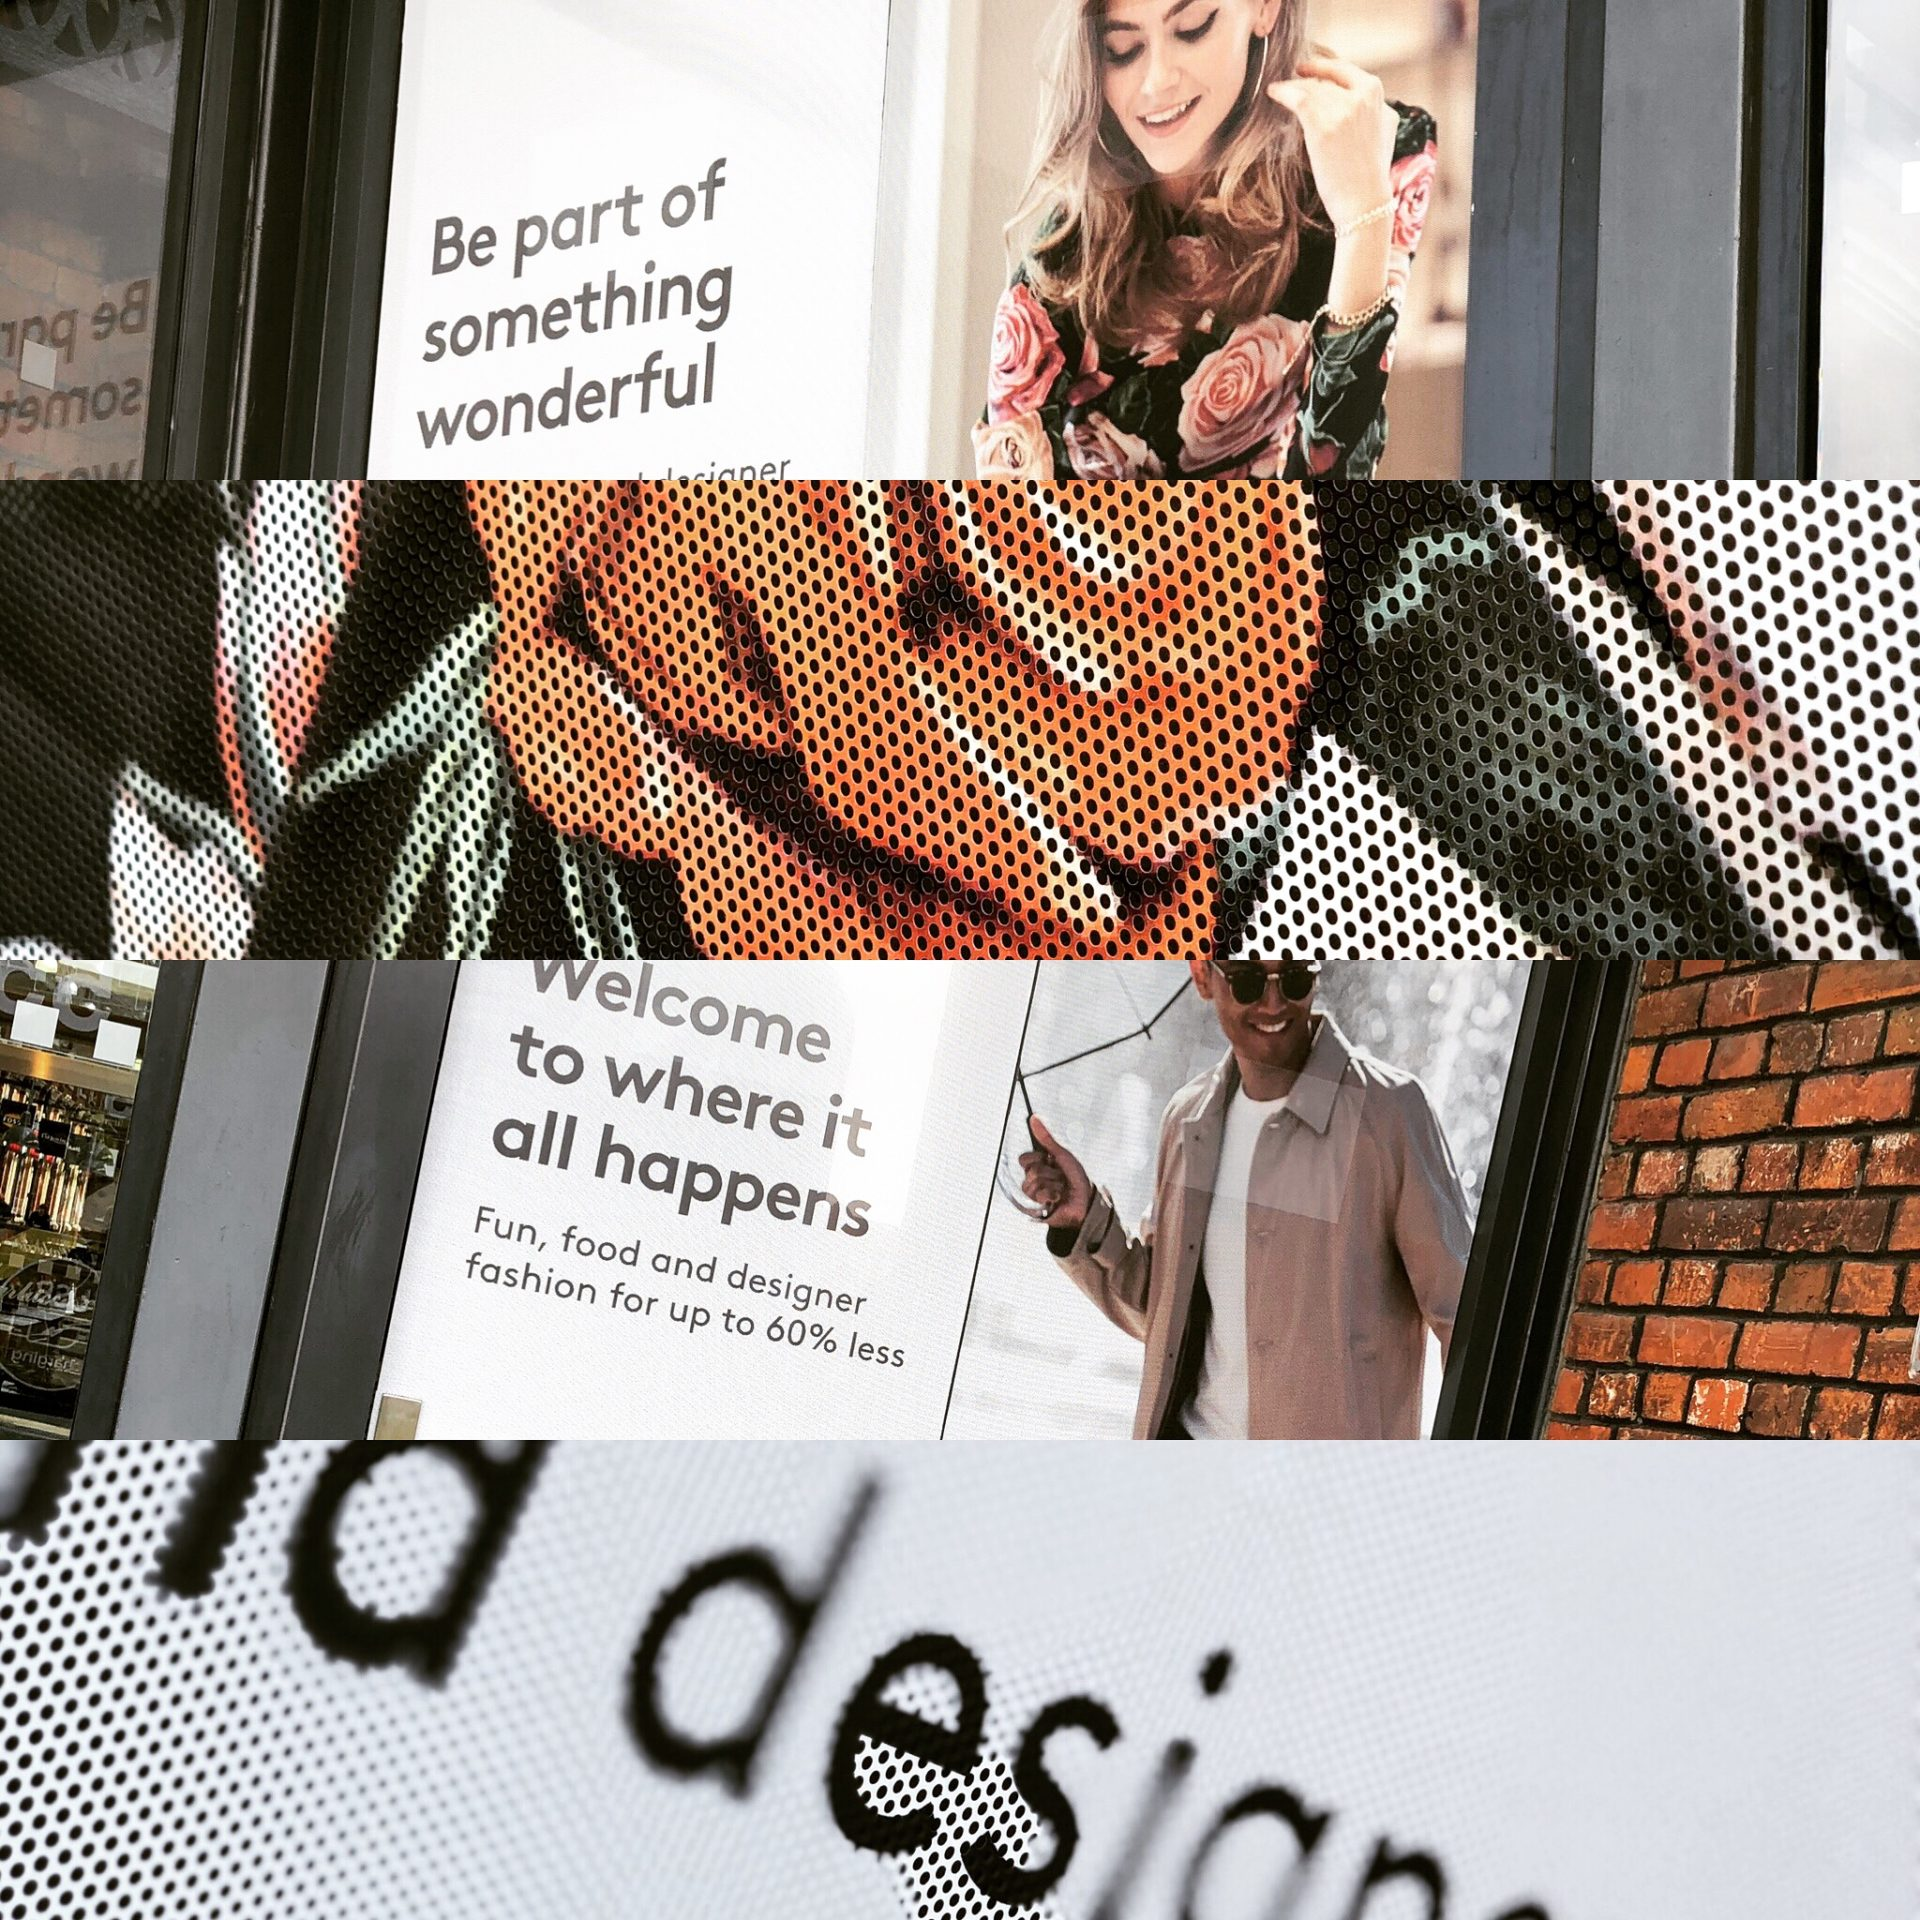 swindon-designer-outlet-uk-entrance-graphics-contra-vision